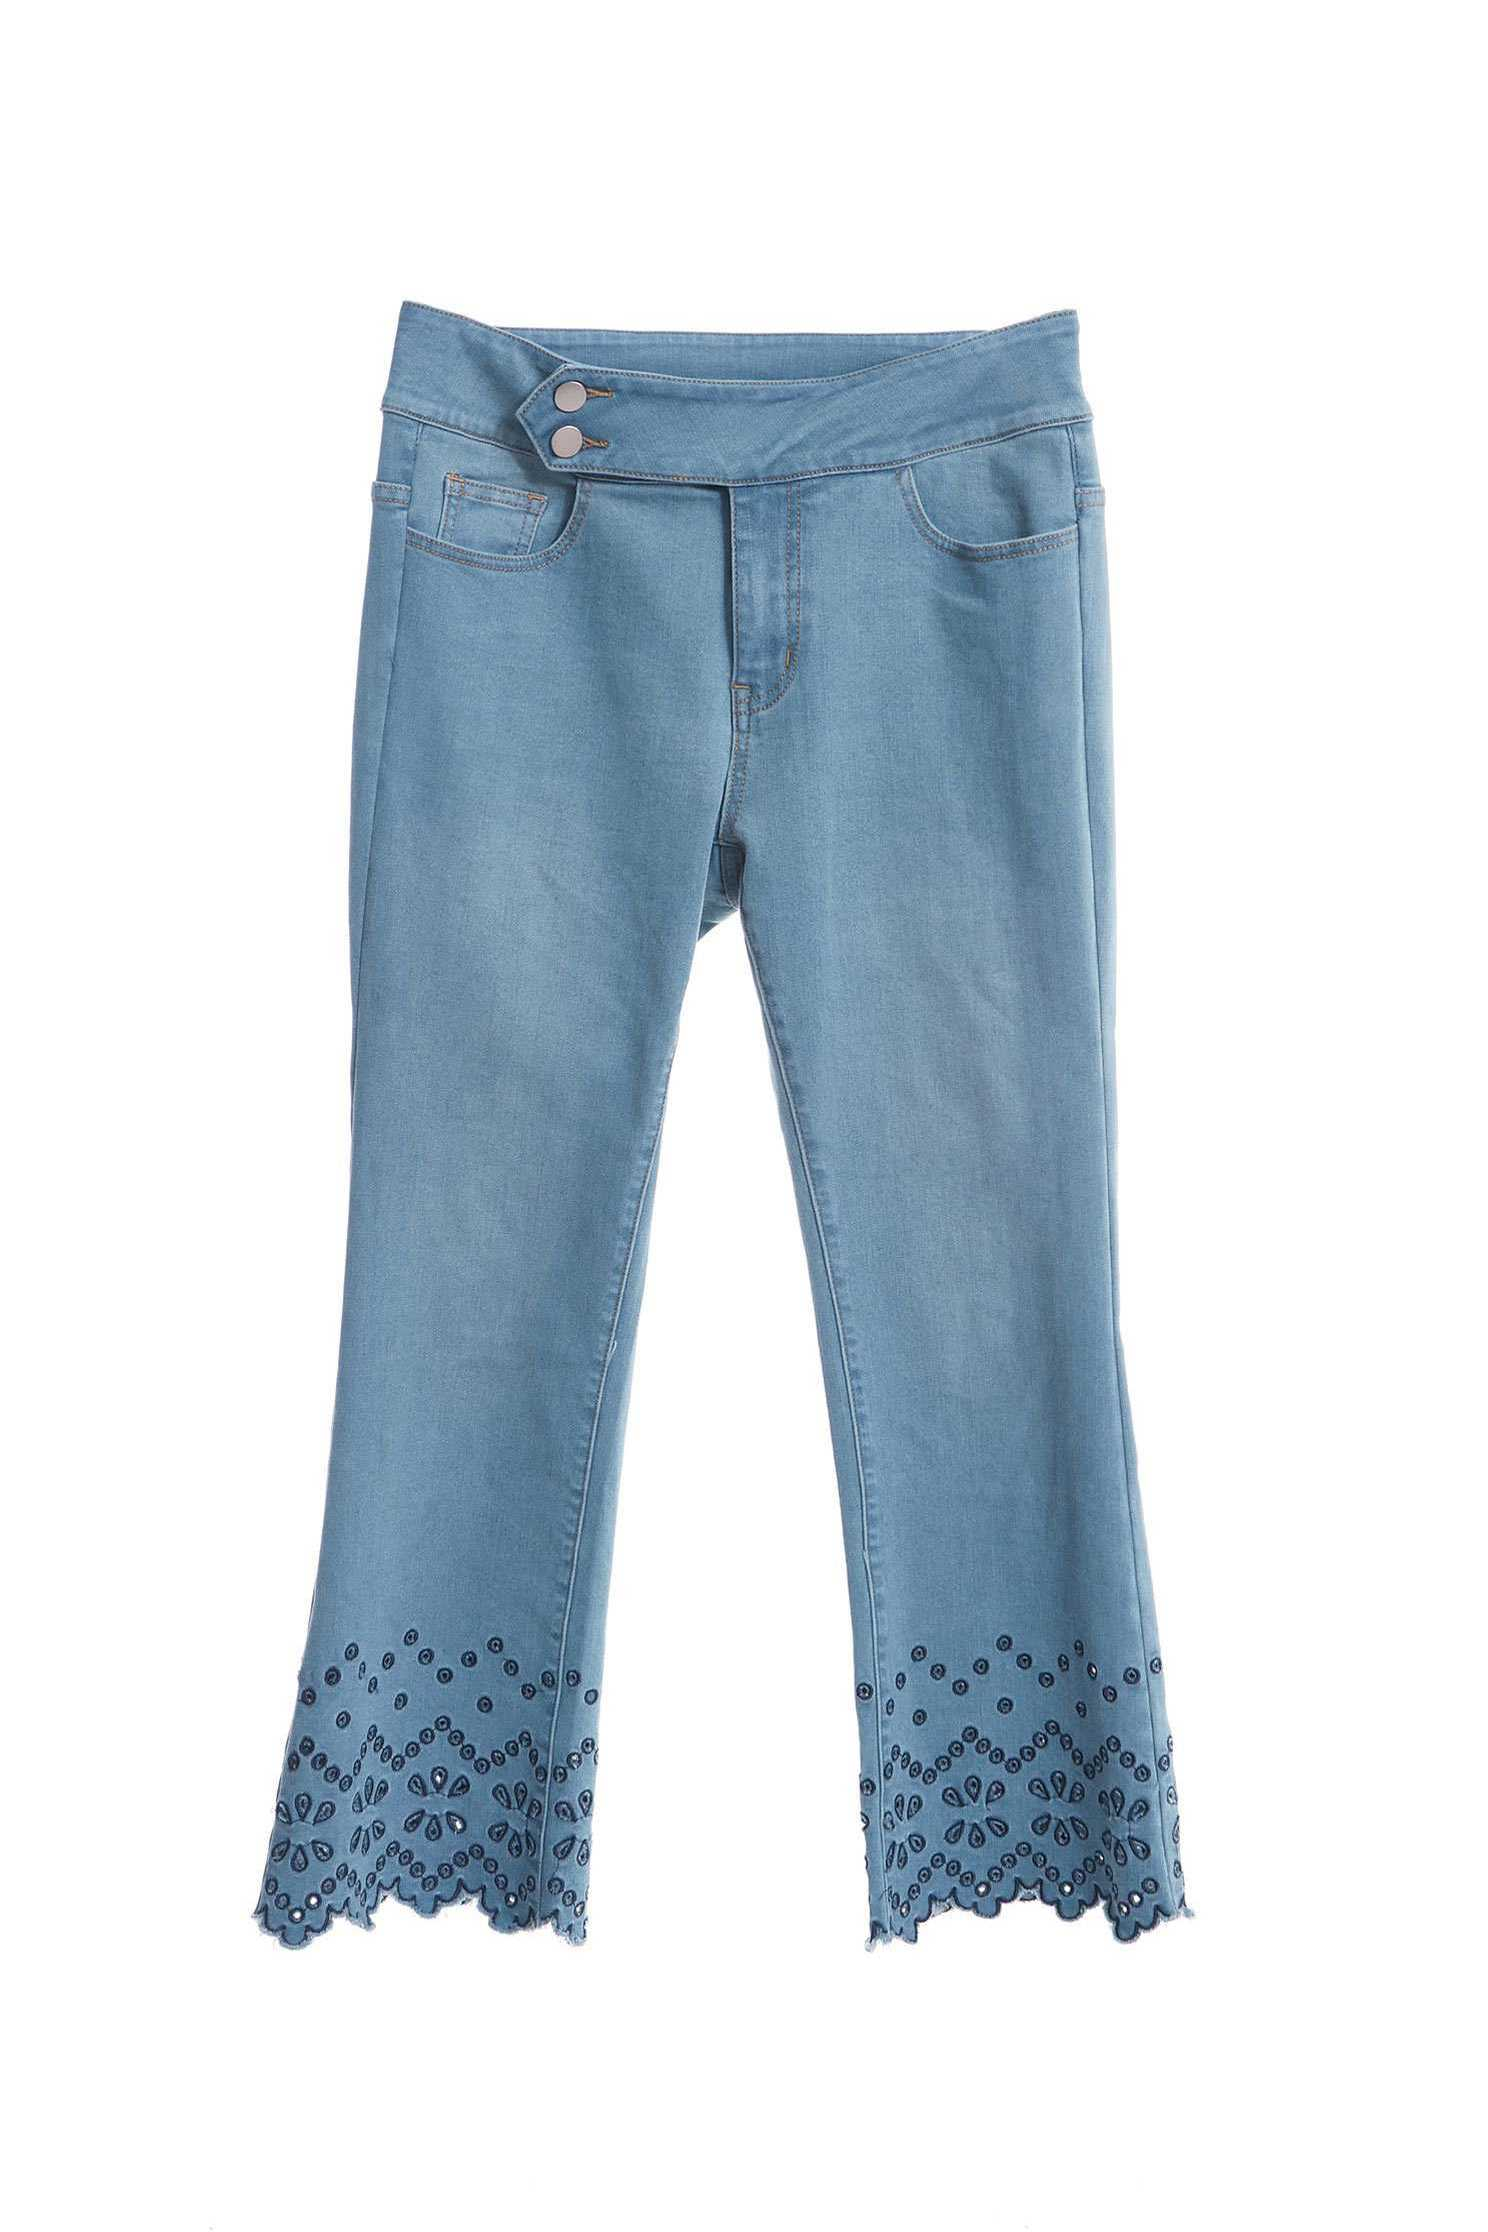 Embroidered hollow flare jeans